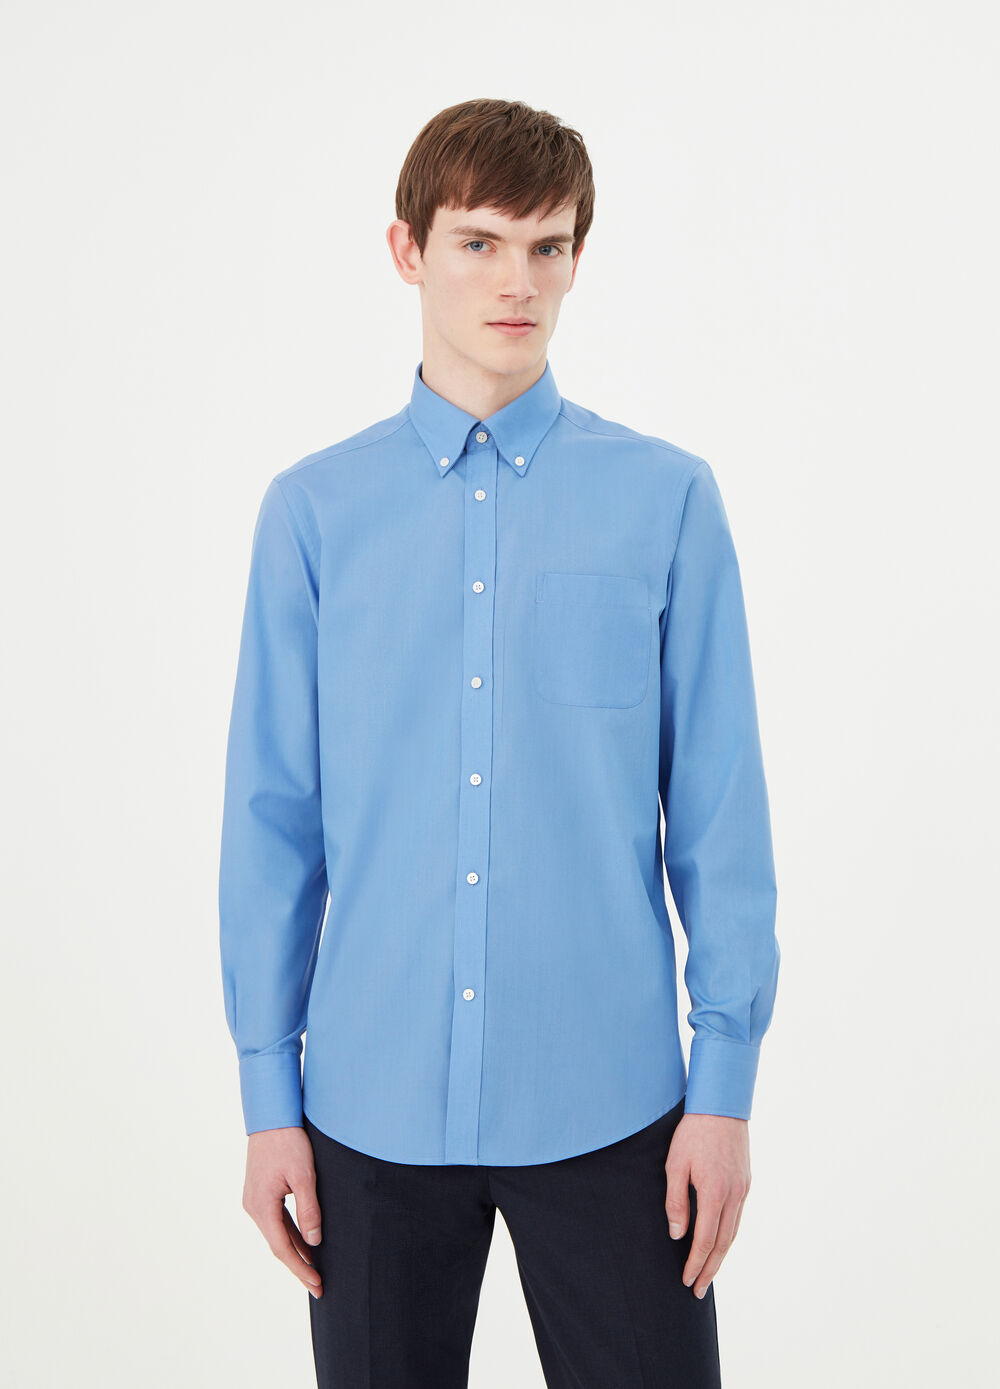 Solid colour, regular-fit shirt